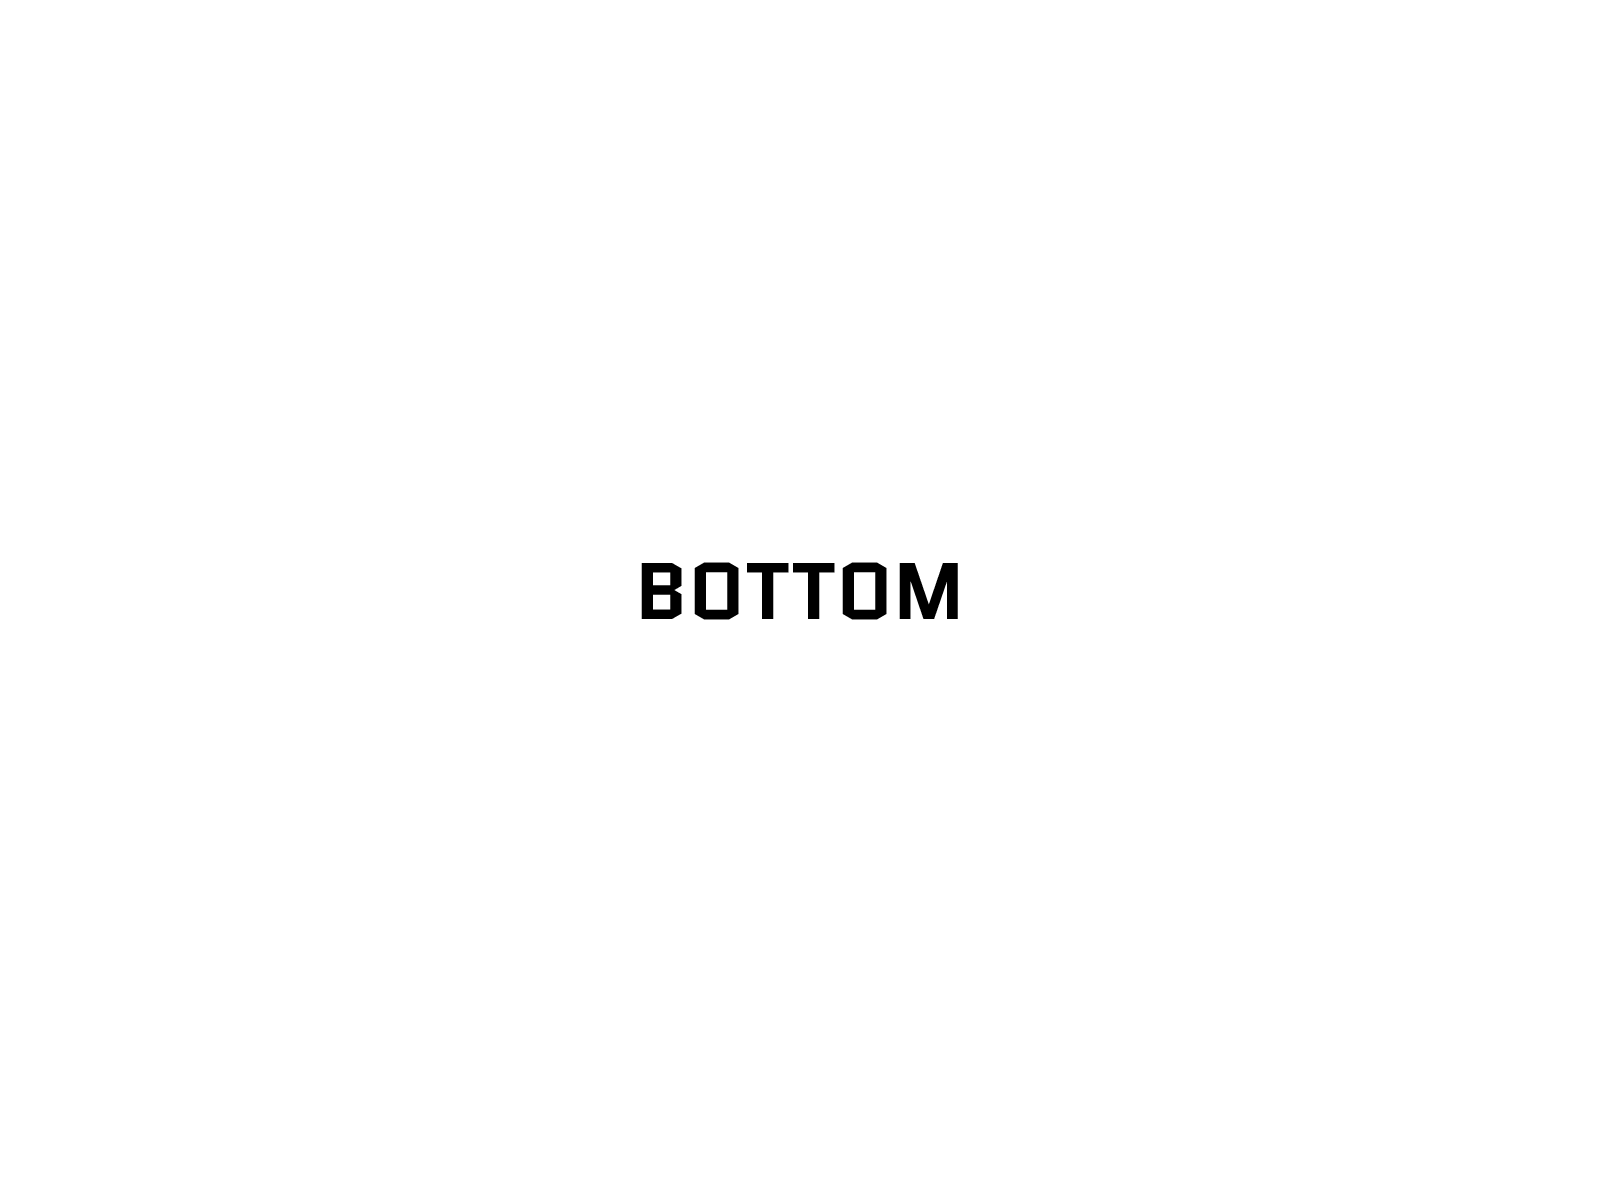 image of Bottom